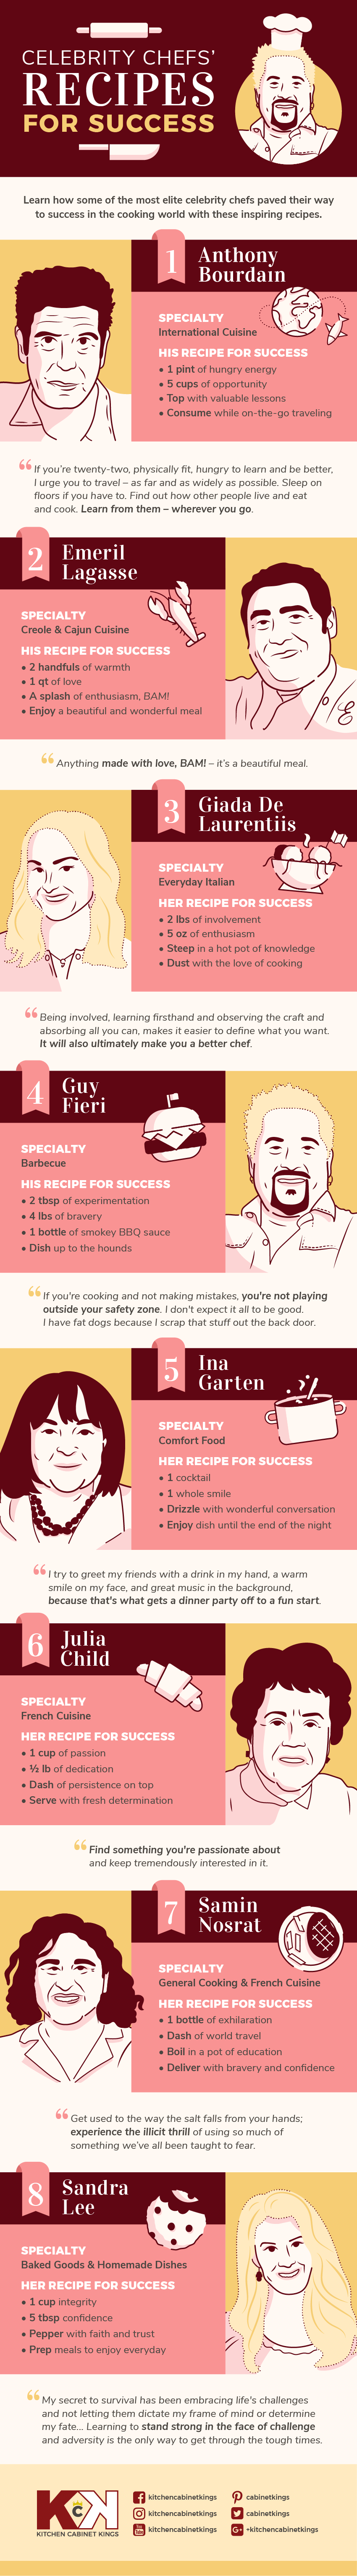 Celebrity Chef Recipes for Success infographic